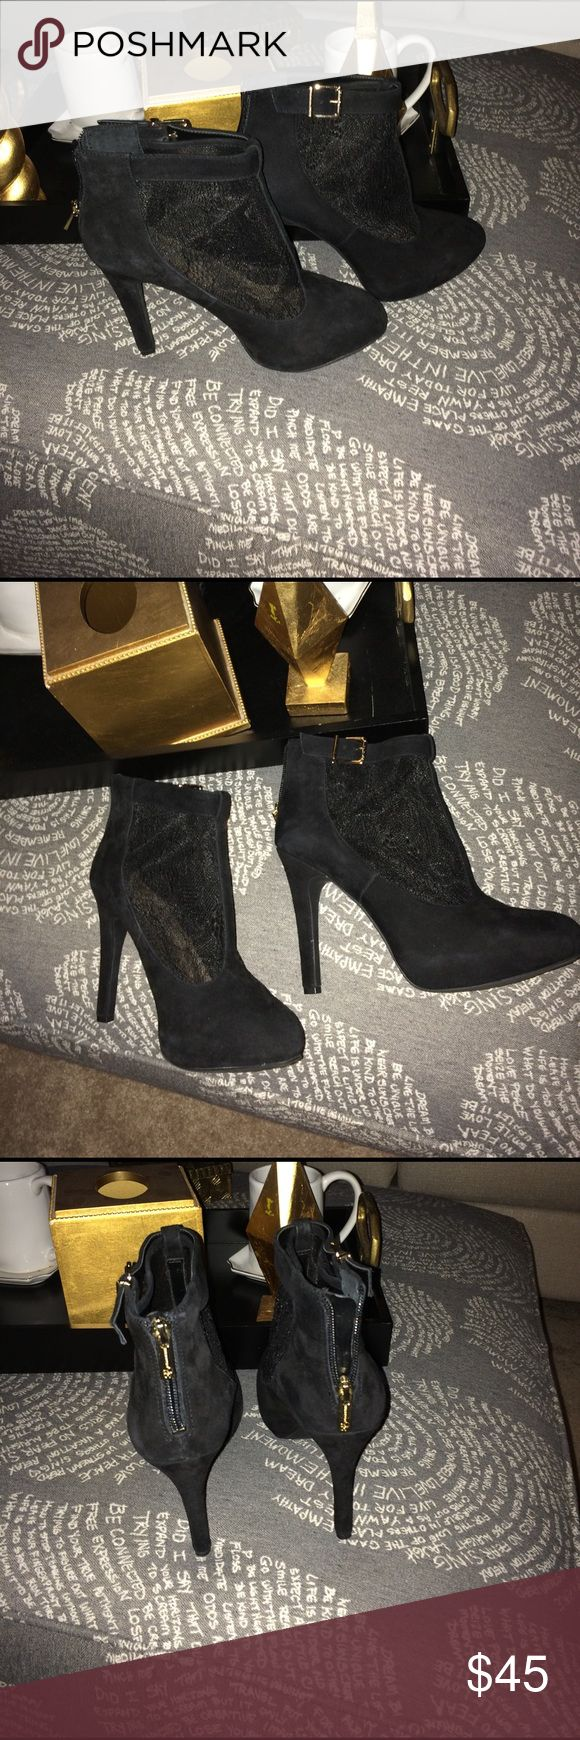 Boots 4 1/2 inch Suede and Lace Booties with gold hardware. 1 inch platform. Worn one time. In excellent condition. Jessica Simpson Shoes Heeled Boots